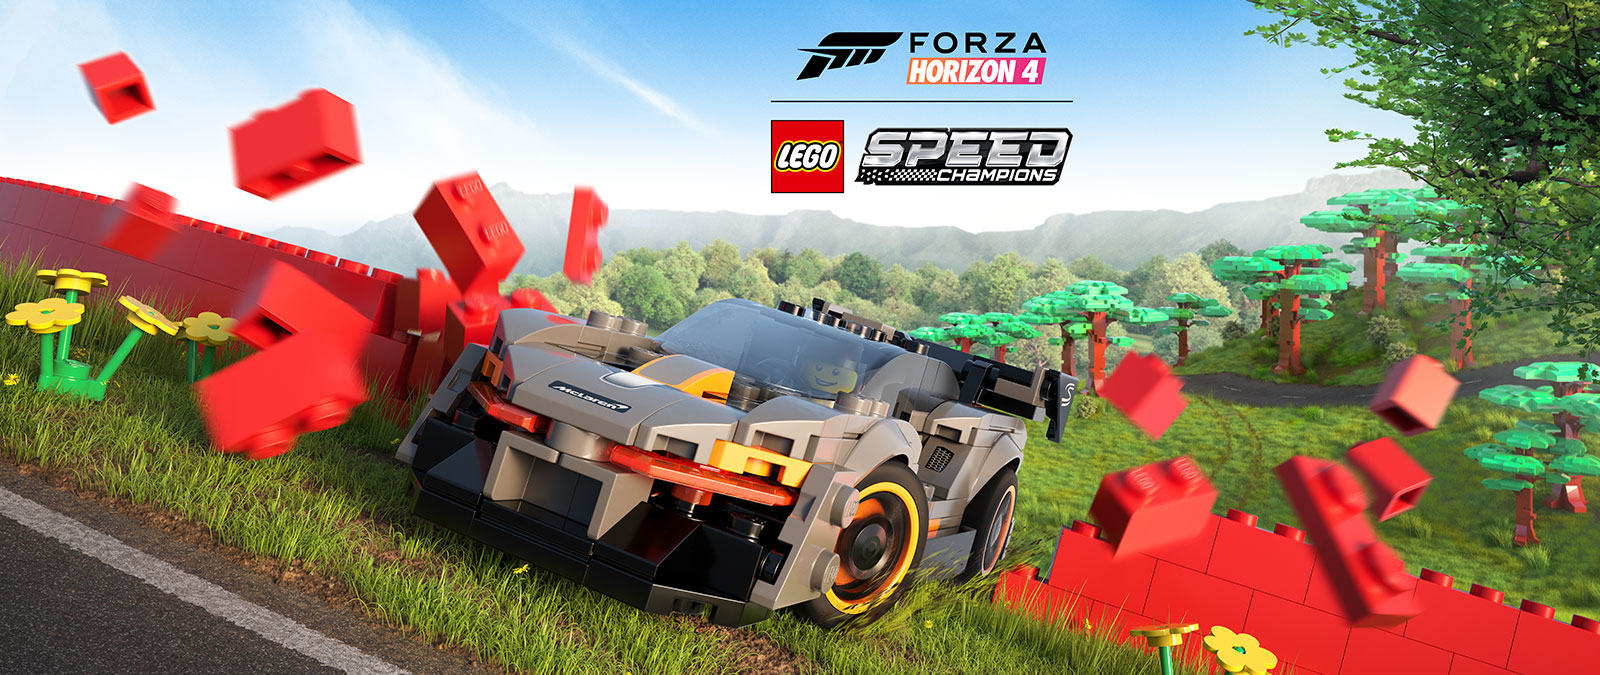 Forza Horizon 4 Lego speed champions, A LEGO McLaren drives through a bright red wall made of lego bricks